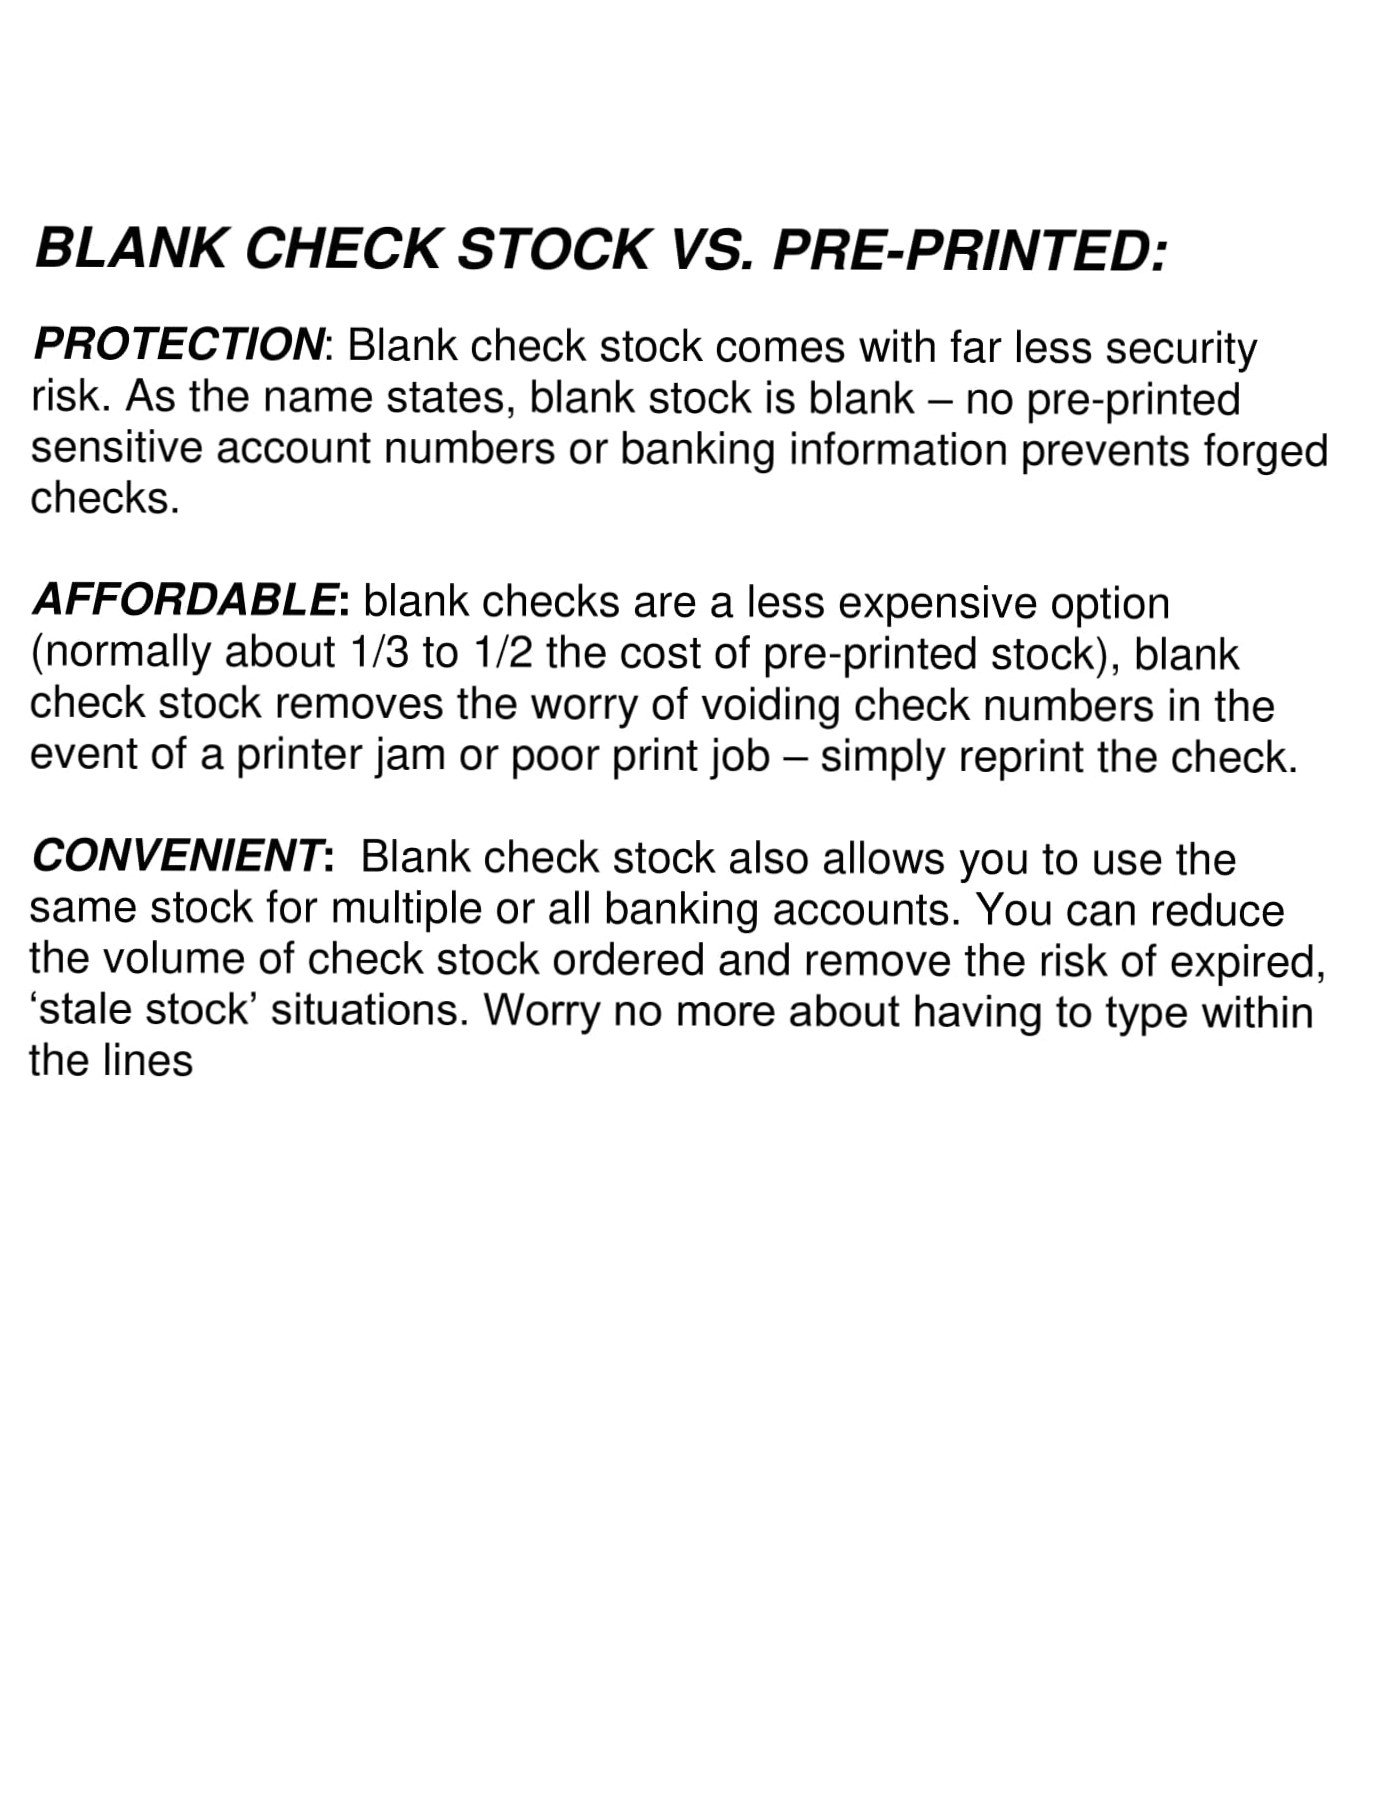 500 Blank Check Stock-Check on Top-Blue Marble Pattern-Compatible with Quickbooks,Quicken,Versacheck and More-(500 Laser Security Sheets-8.5''x11'' #24)-Made in USA with Pride! by Signature Forms (Image #7)